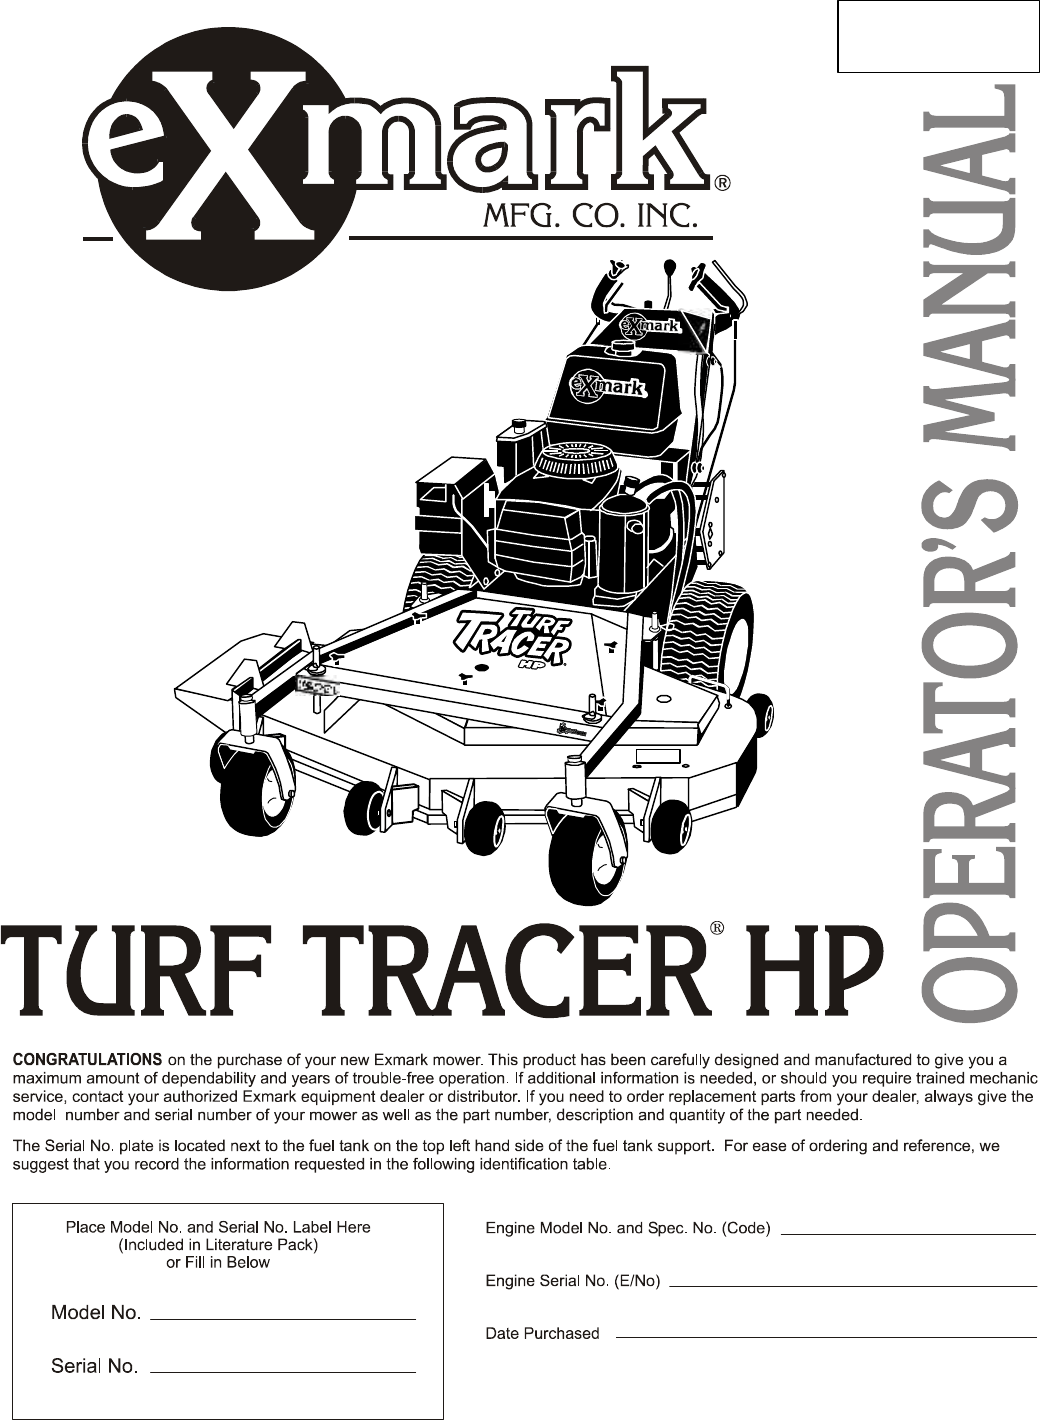 Exmark Lawn Mower Turf Tracer HP User Guide